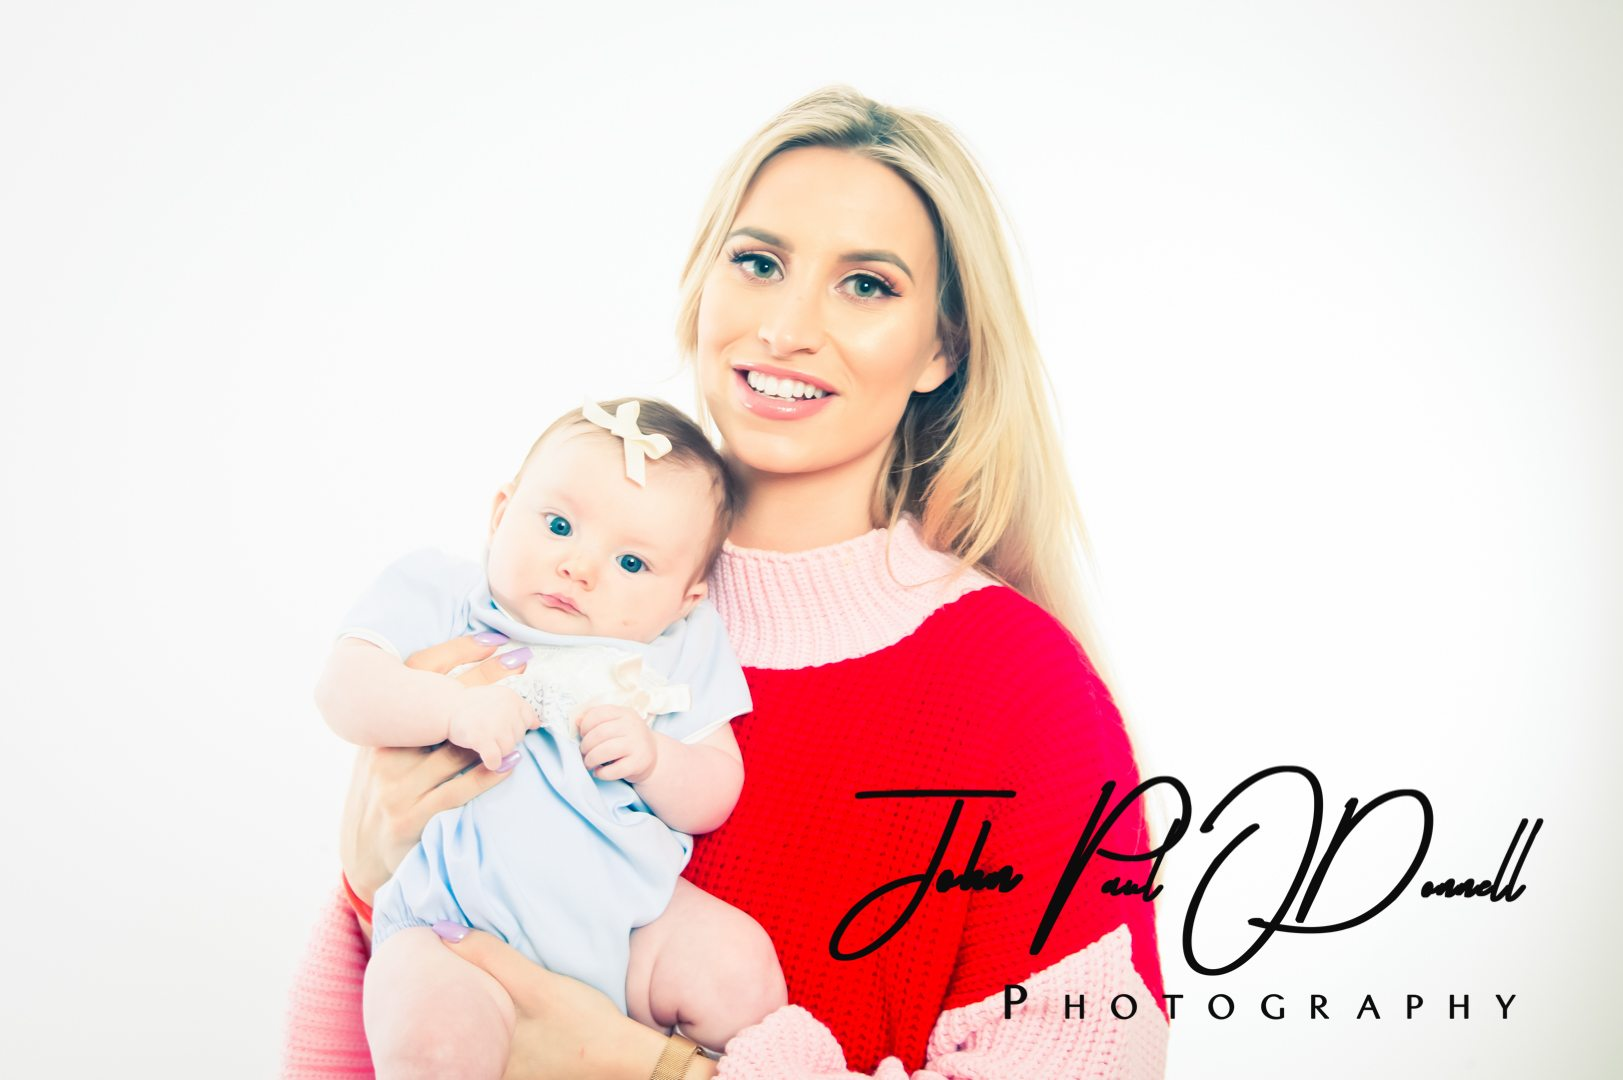 portrait photography herts